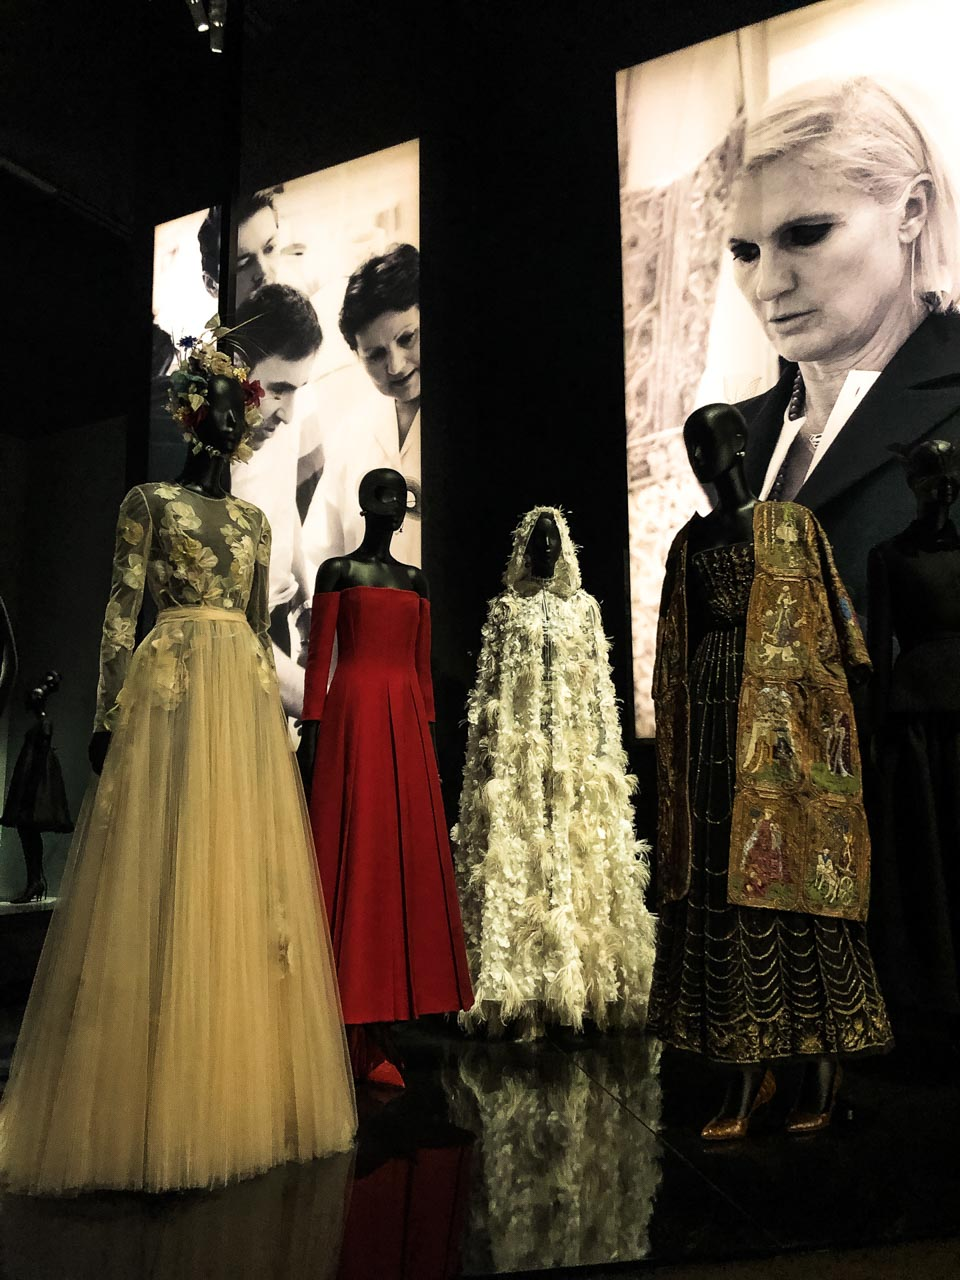 Creations of Maria Grazia Chiuri for Dior at the Victoria and Albert Museum in London